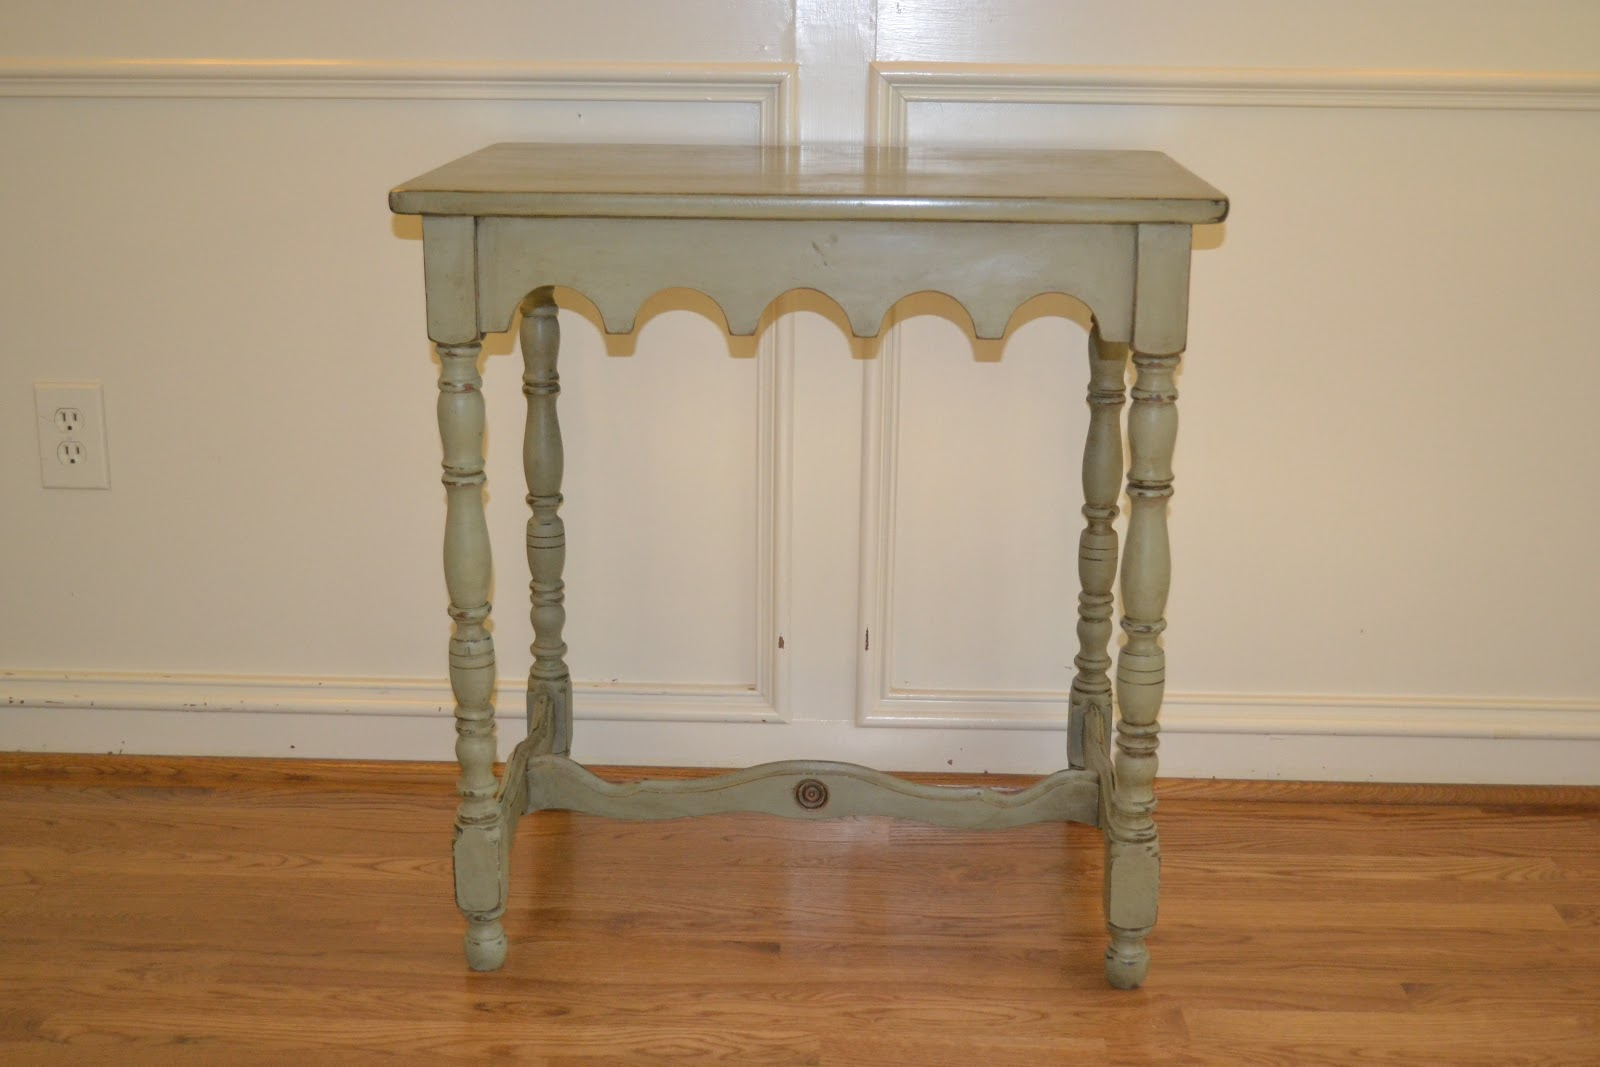 4decor Check Out My Latest Custom Painted Furniture I